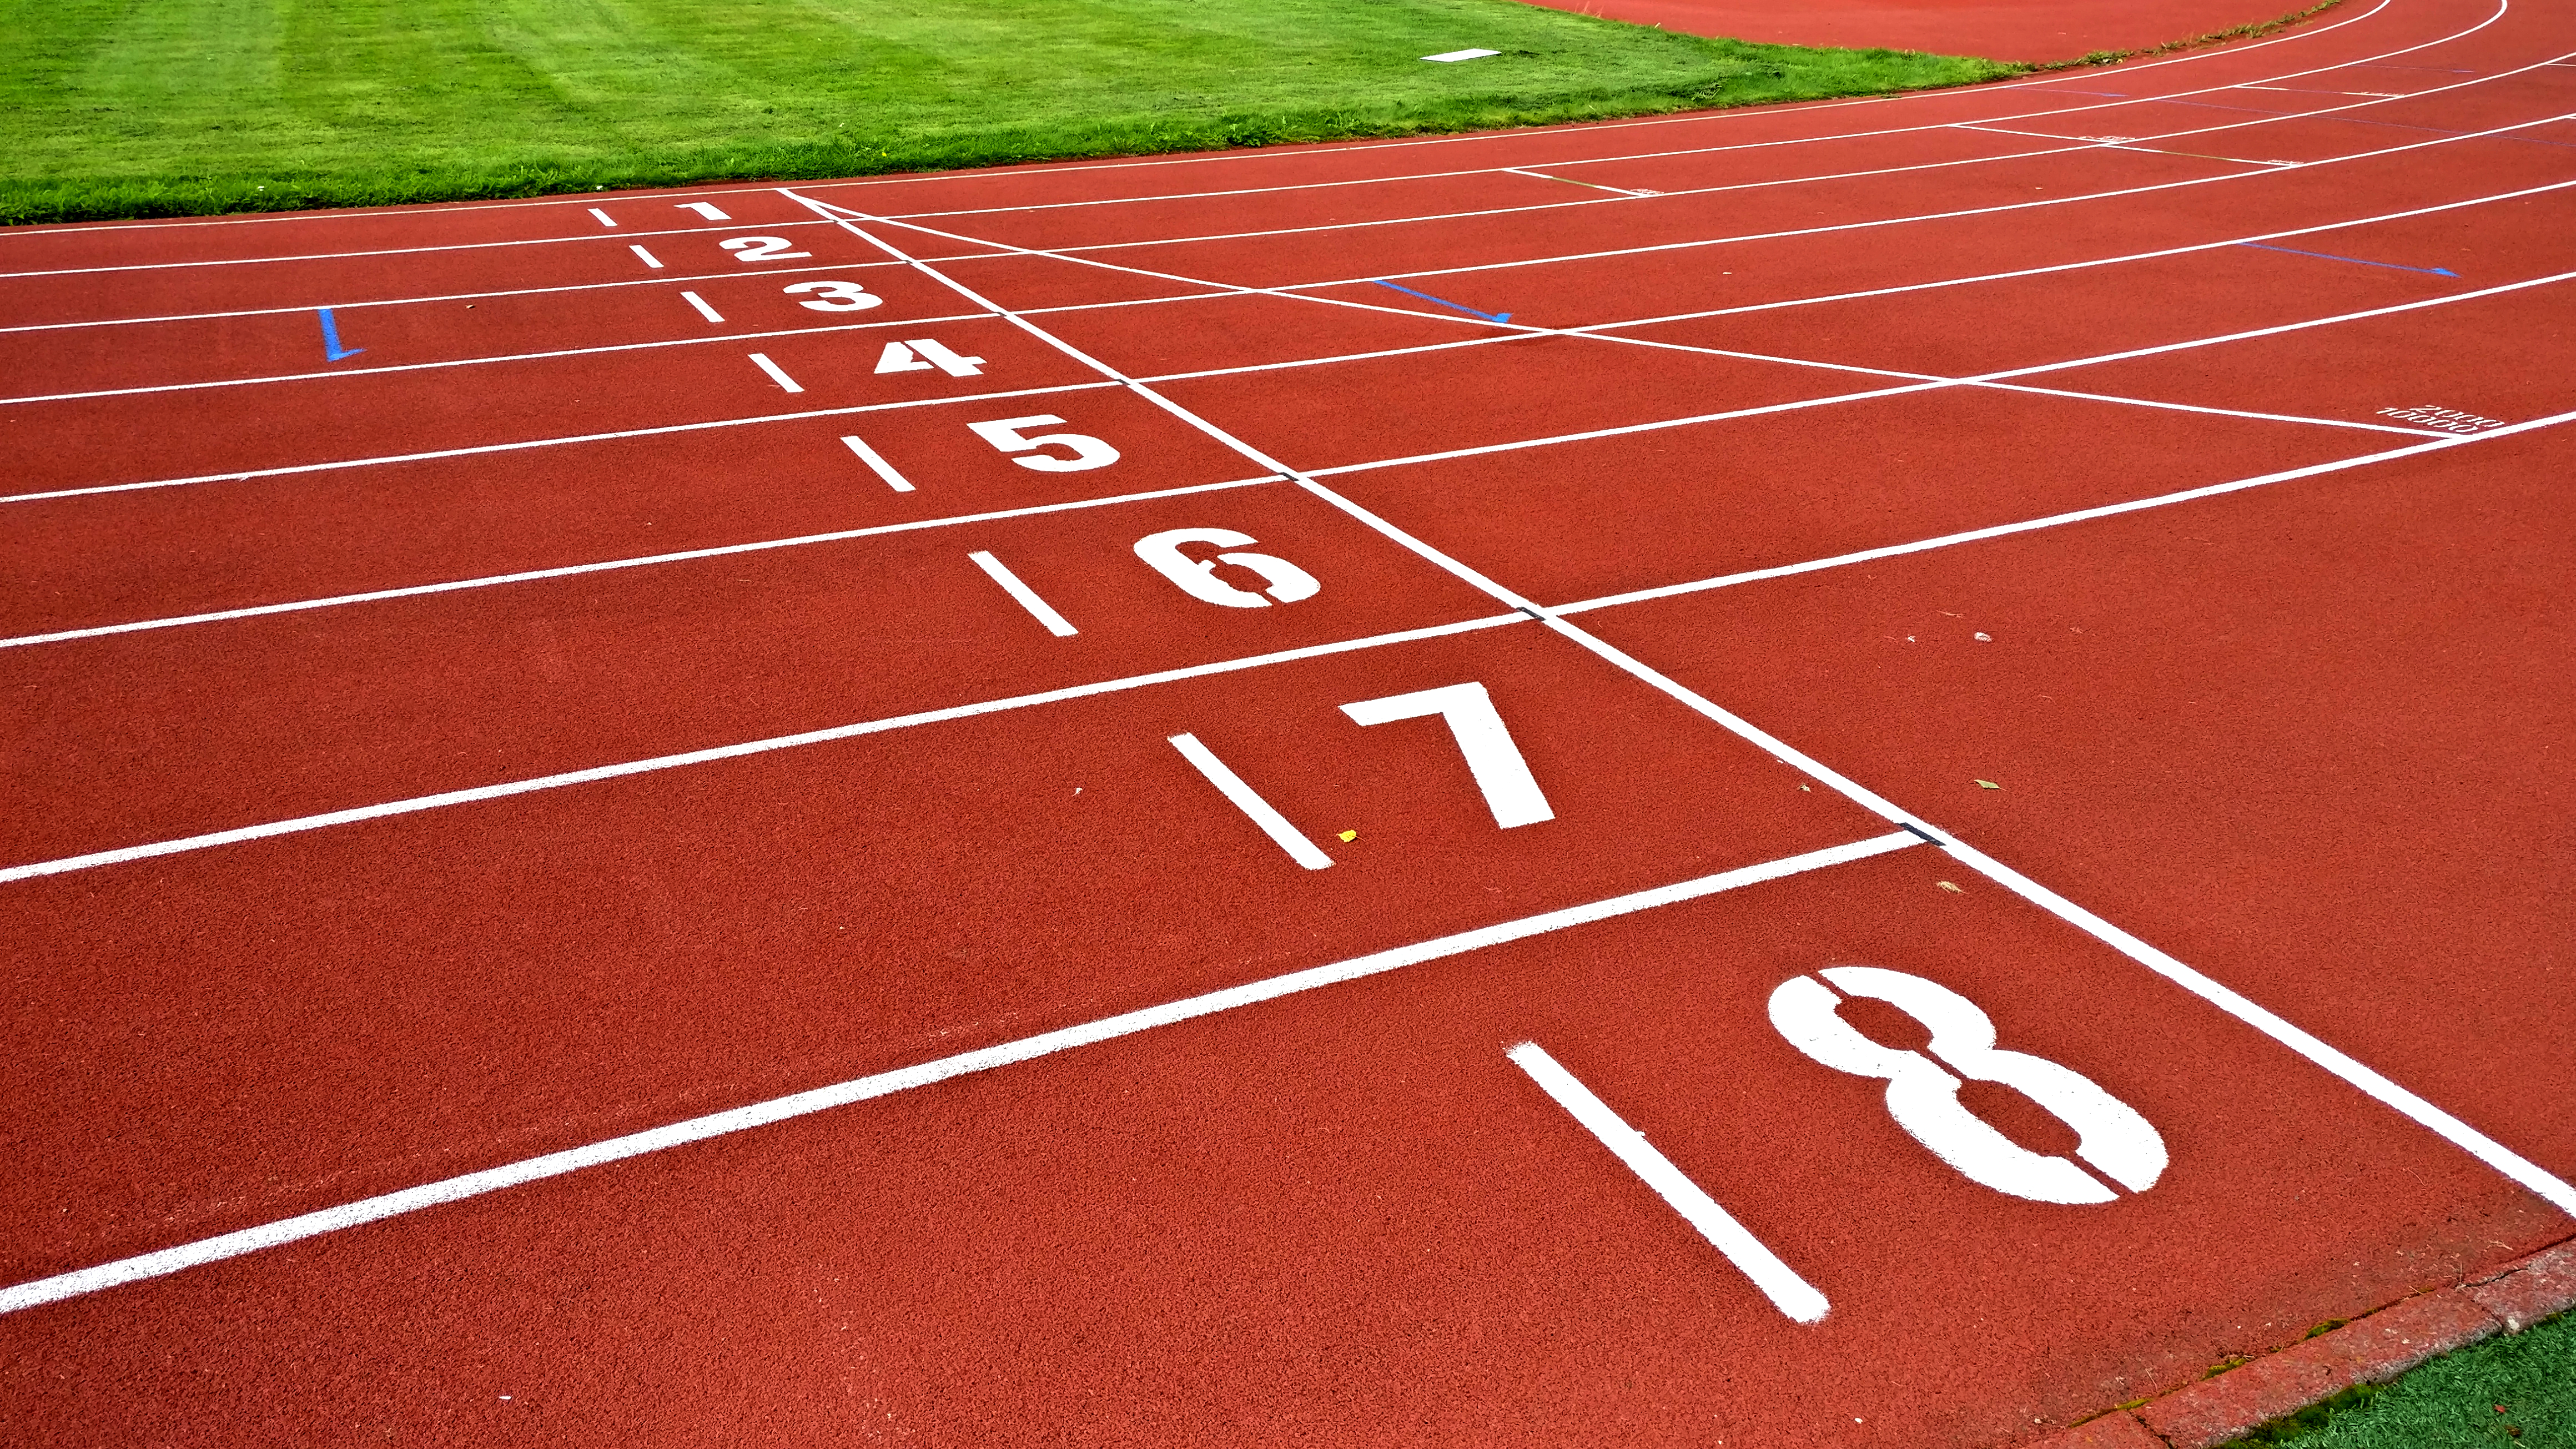 file numbers of starting line track jpg wikimedia commons